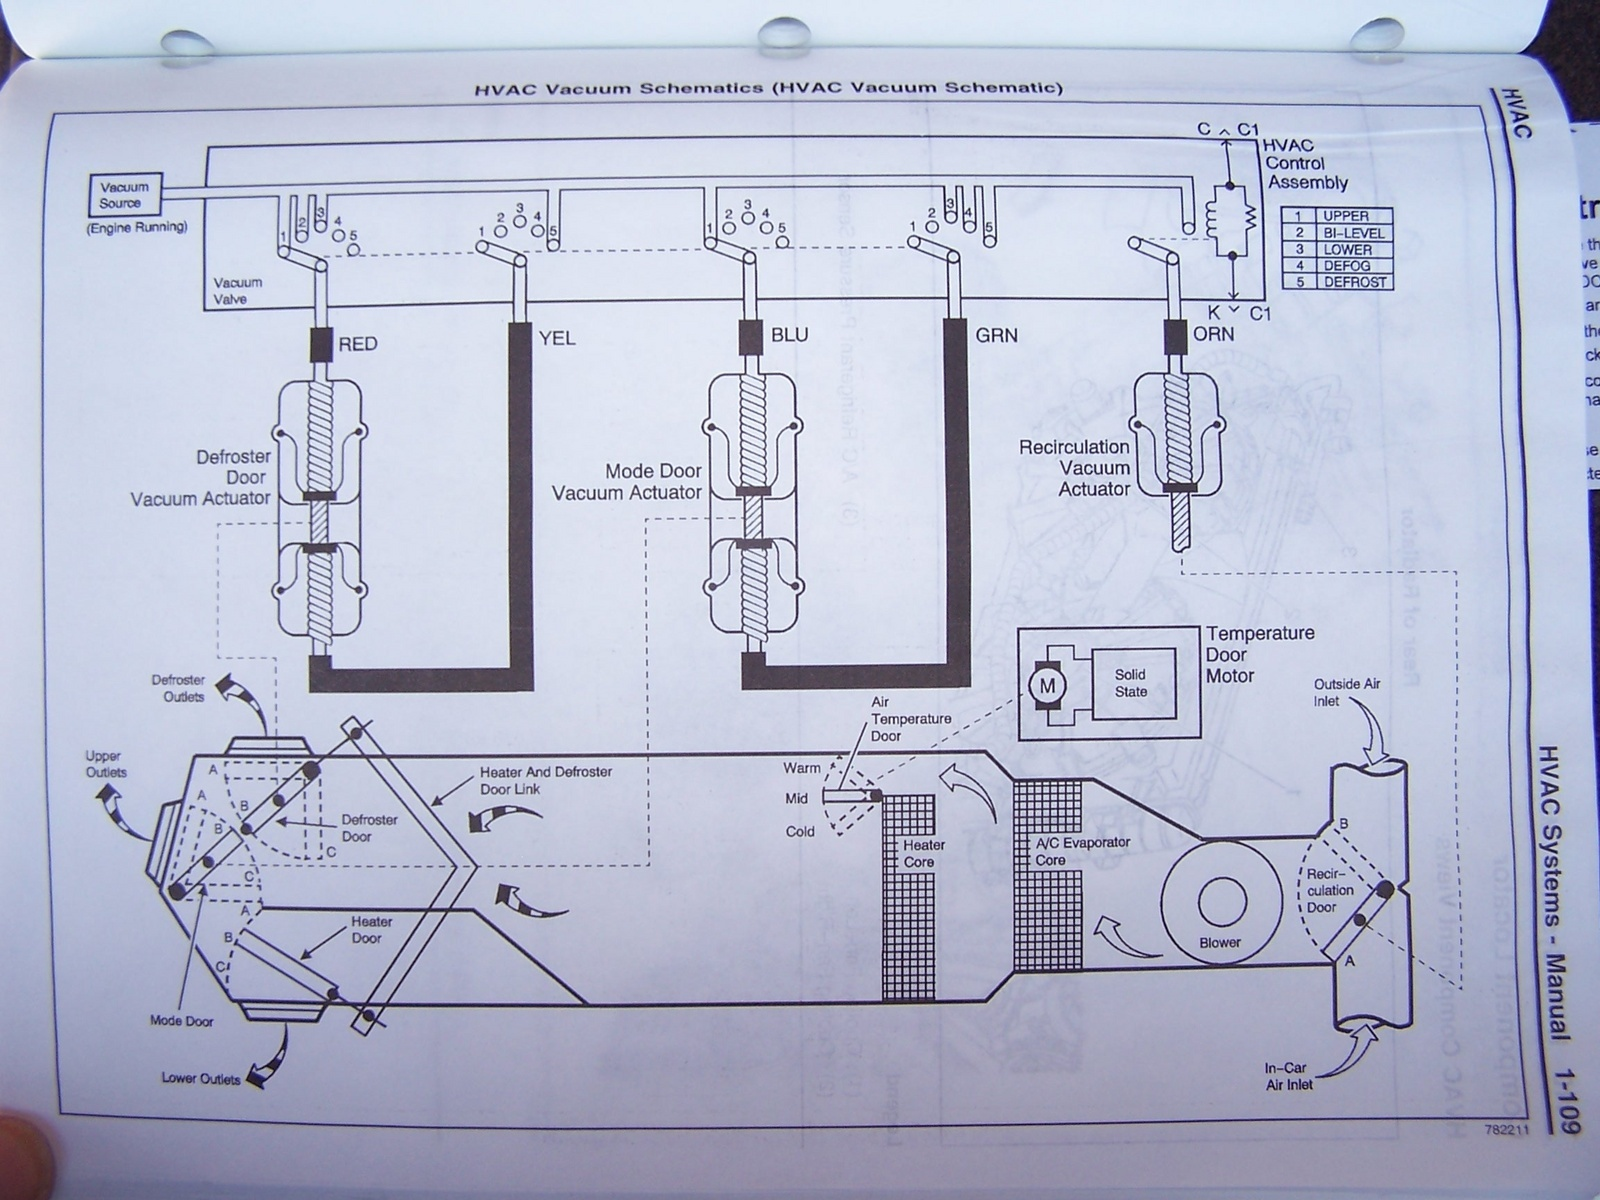 1996 gmc fuse box diagram chevrolet impala questions air flow diverter not working